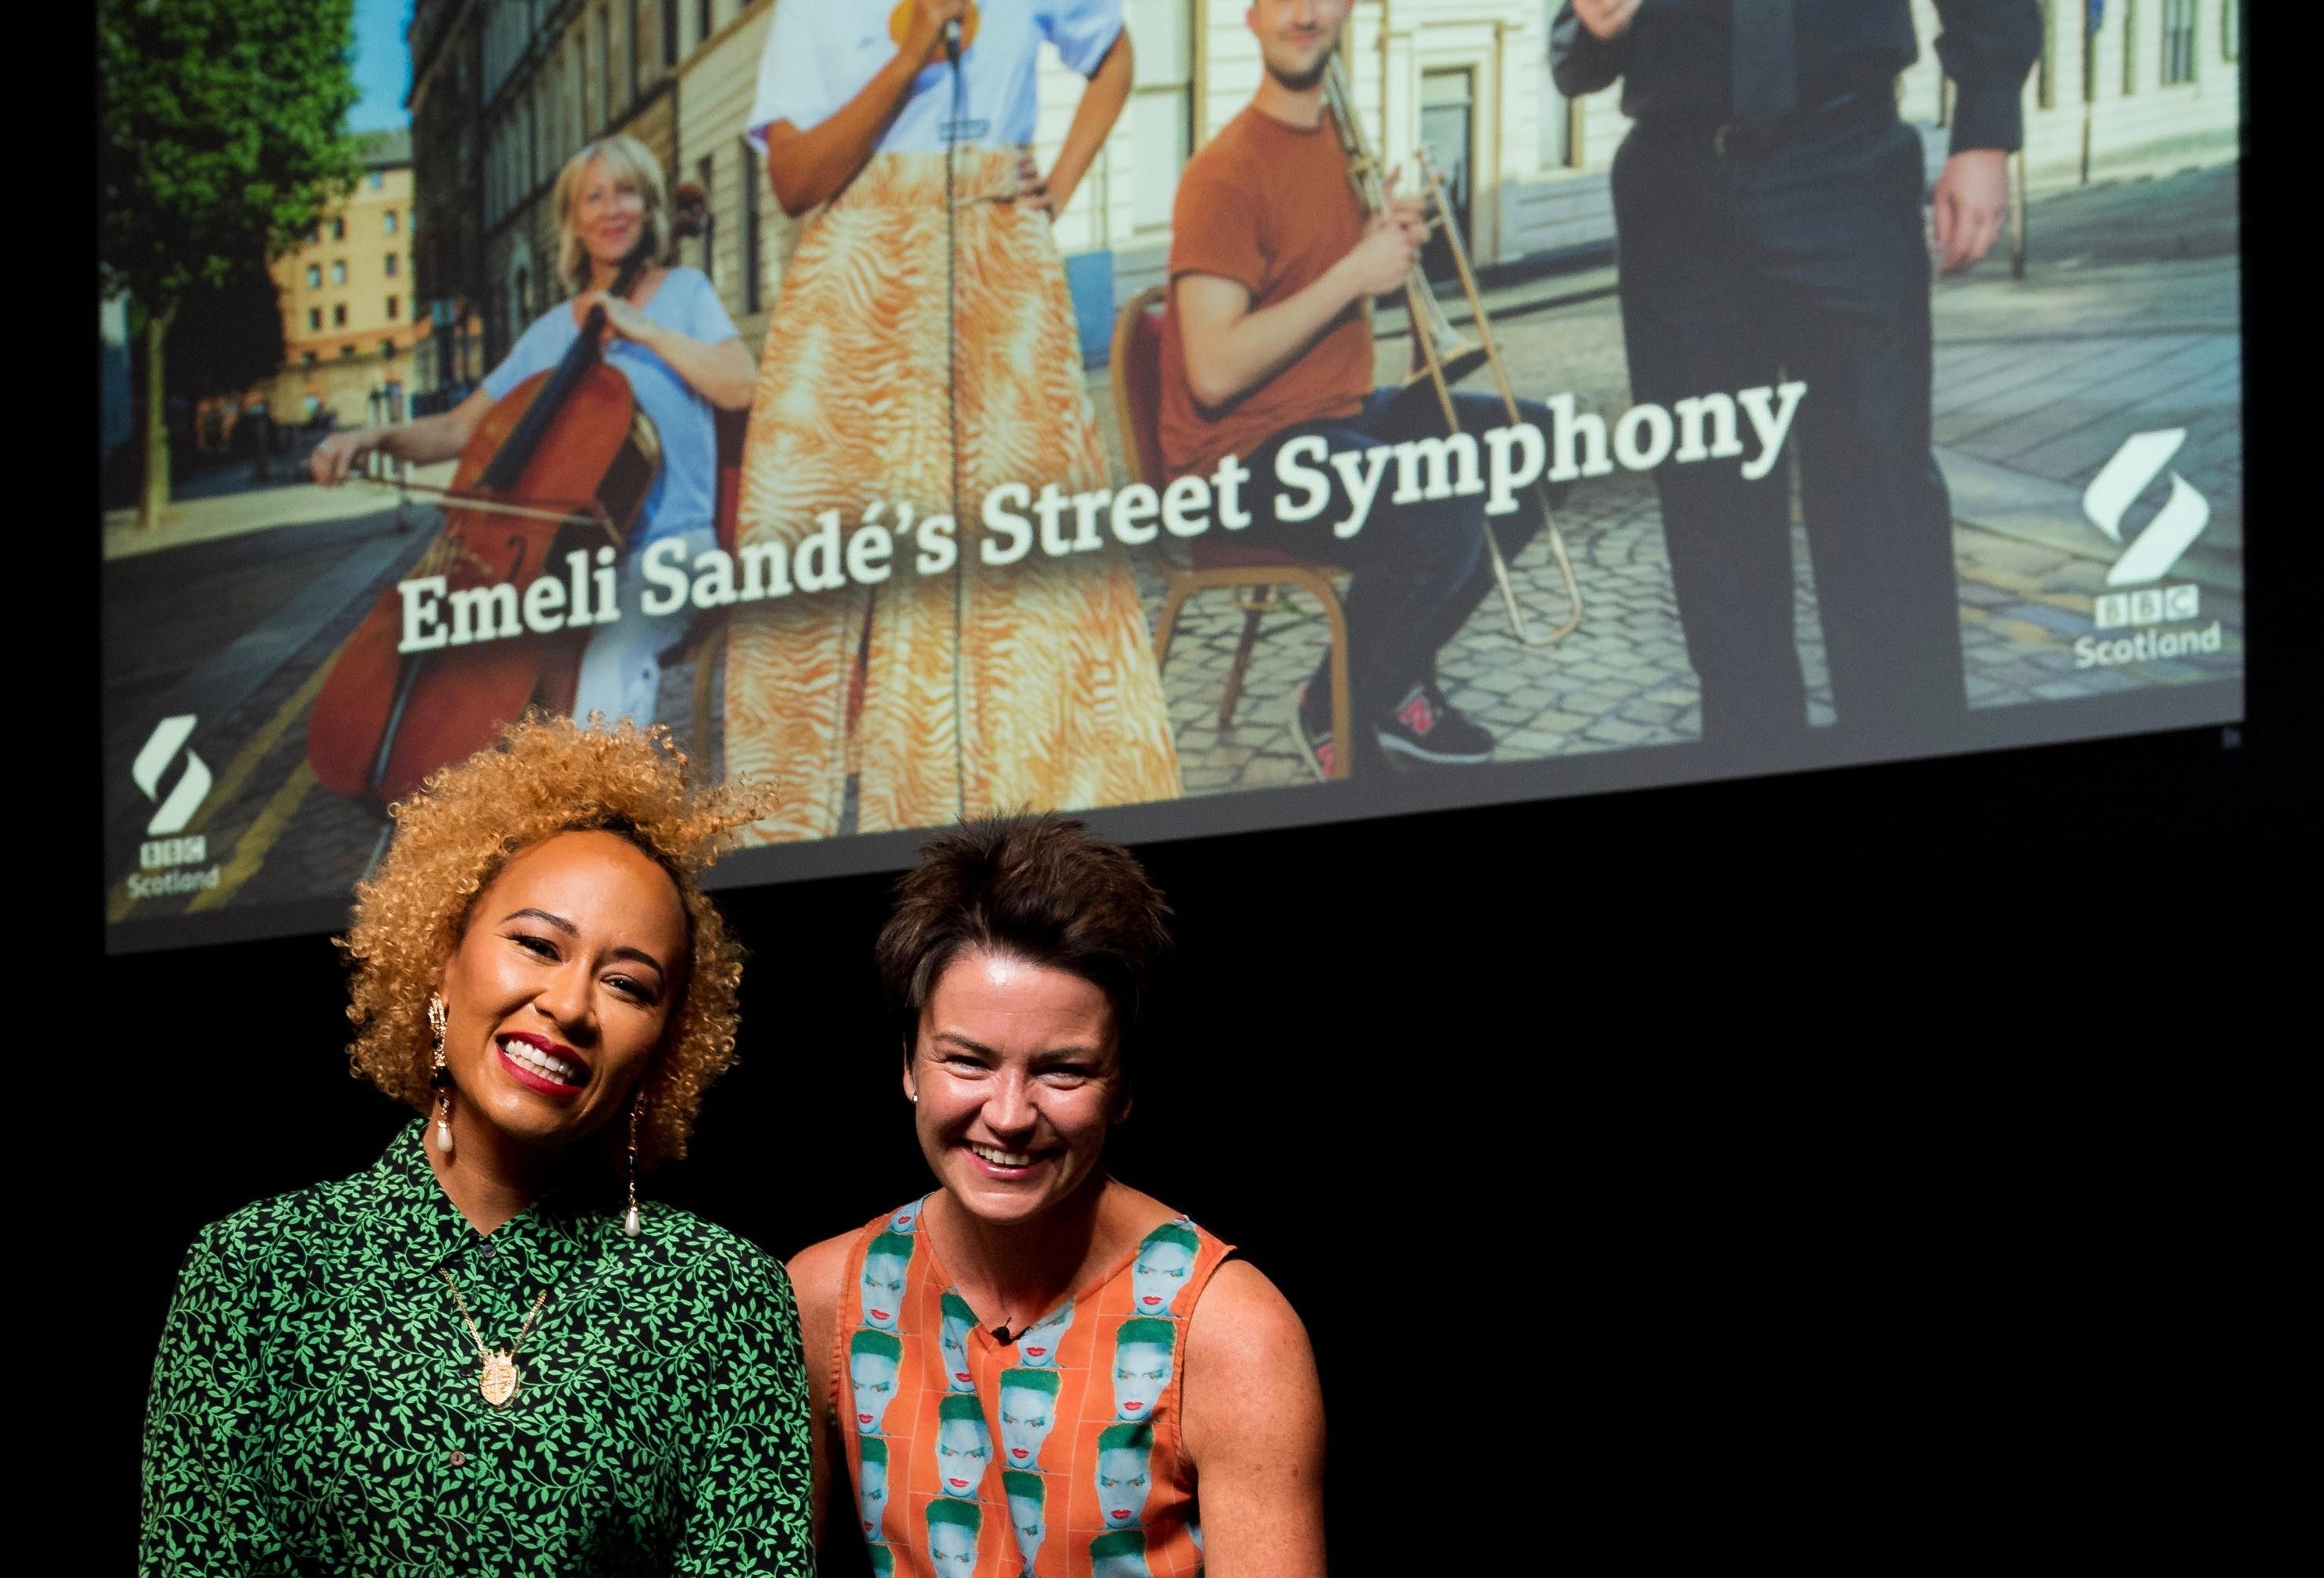 Emeli Sandé with BBC Scotland's Fiona Stalker who led the singer in conversation after a screening of her new programme, Emeli Sandé's Street Symphony at the Lemon Tree in Aberdeen.